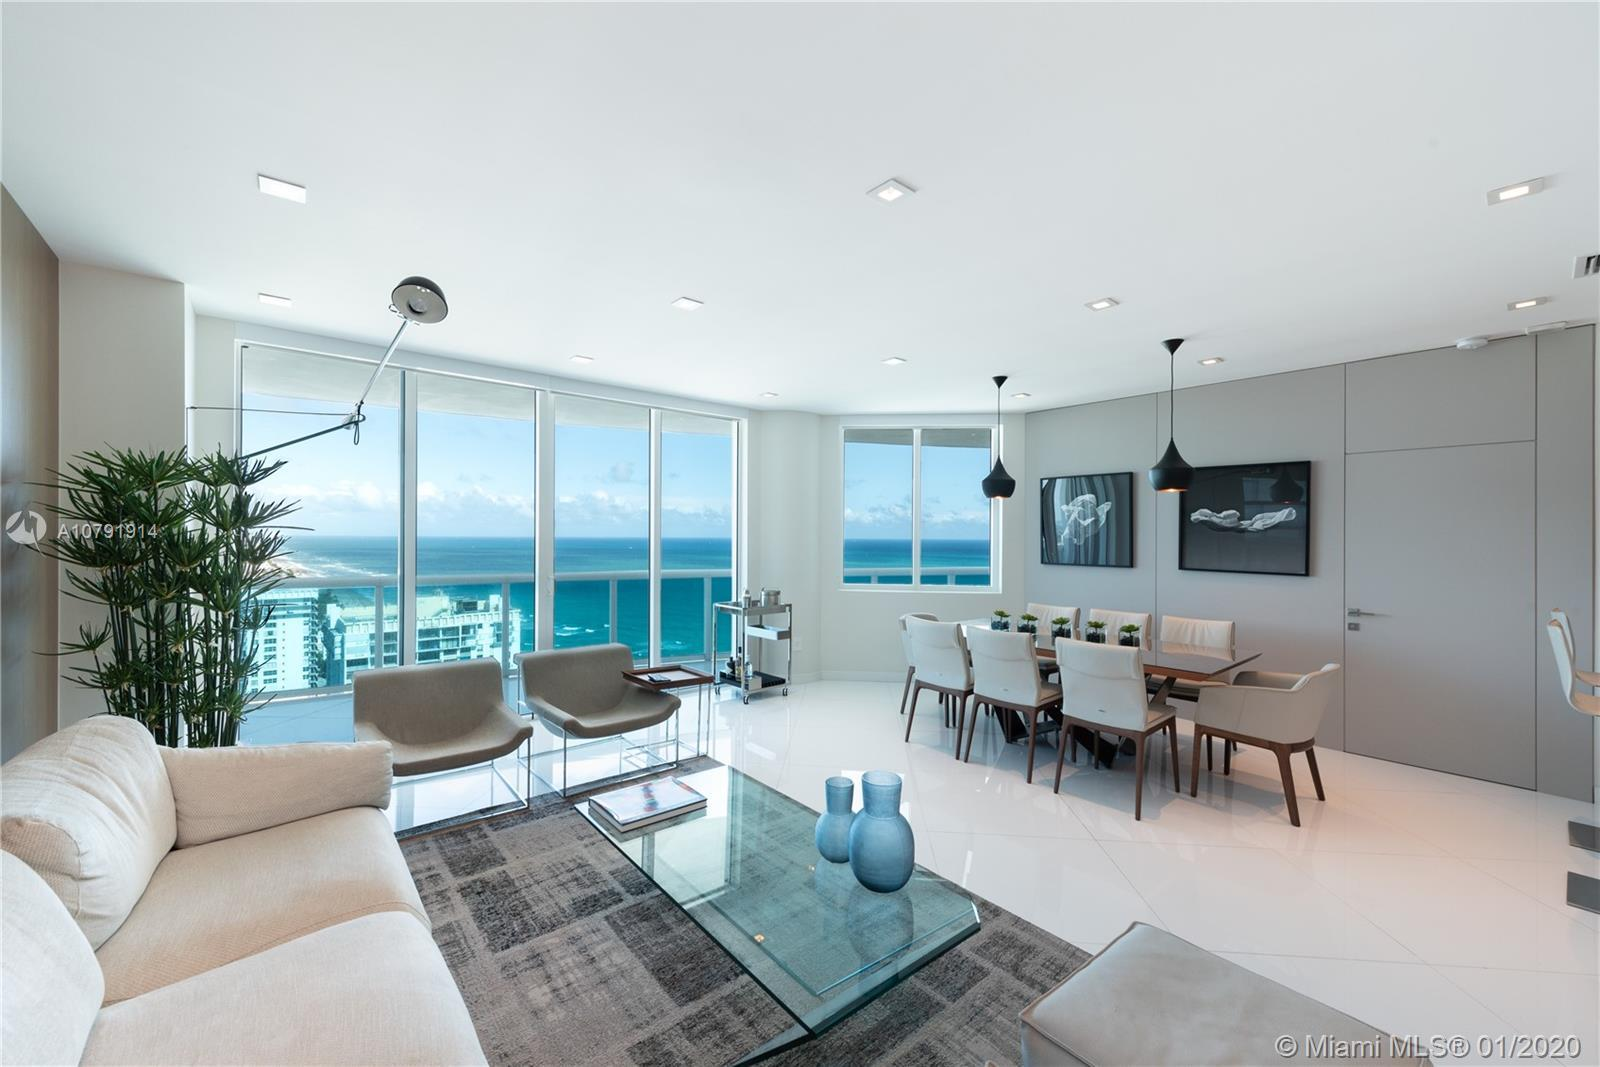 Professionally decorated and exceptionally finished - sold turnkey. Enjoy unobstructed city and ocea